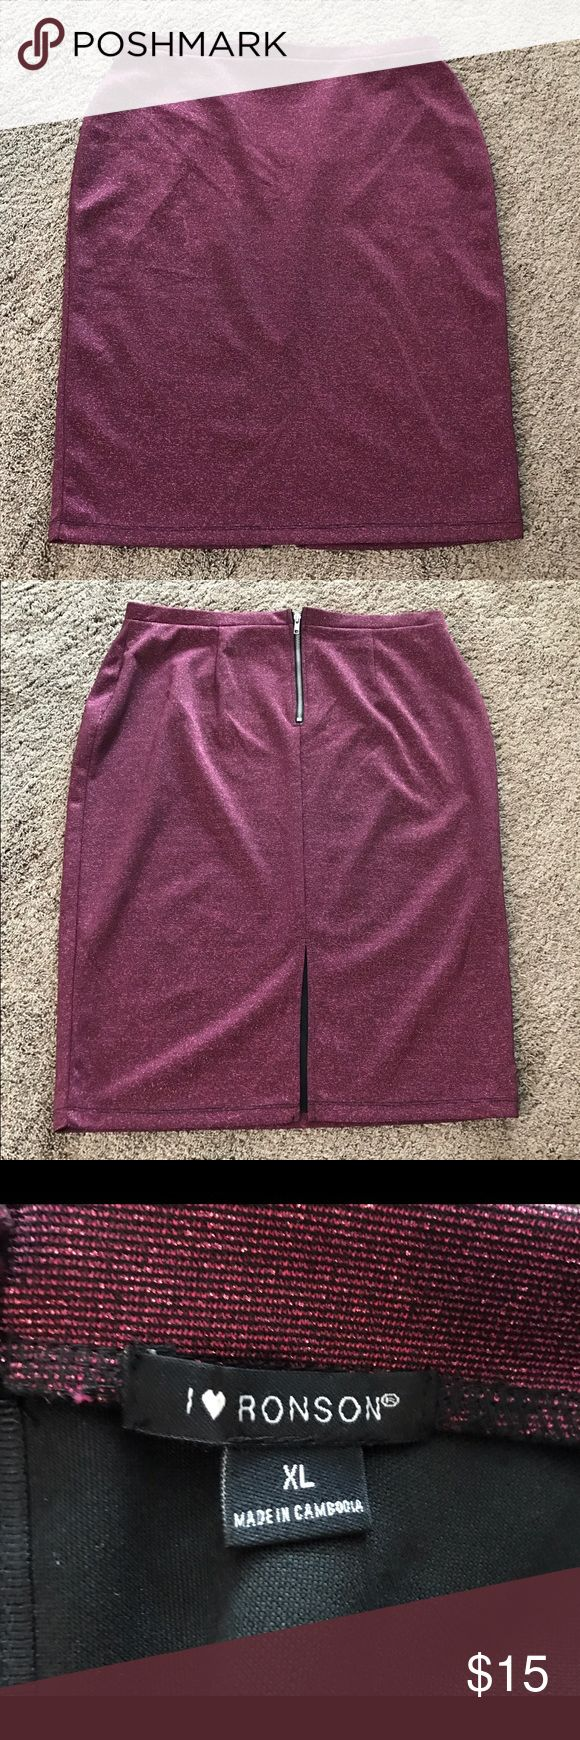 Purple Glitter Pencil Skirt Purple pencil skirt with a lot of glitter! There's a zipper and a slit in the back. Worn once, in excellent condition. No trades. Comment with questions :) I ♥️ Ronson Skirts Pencil